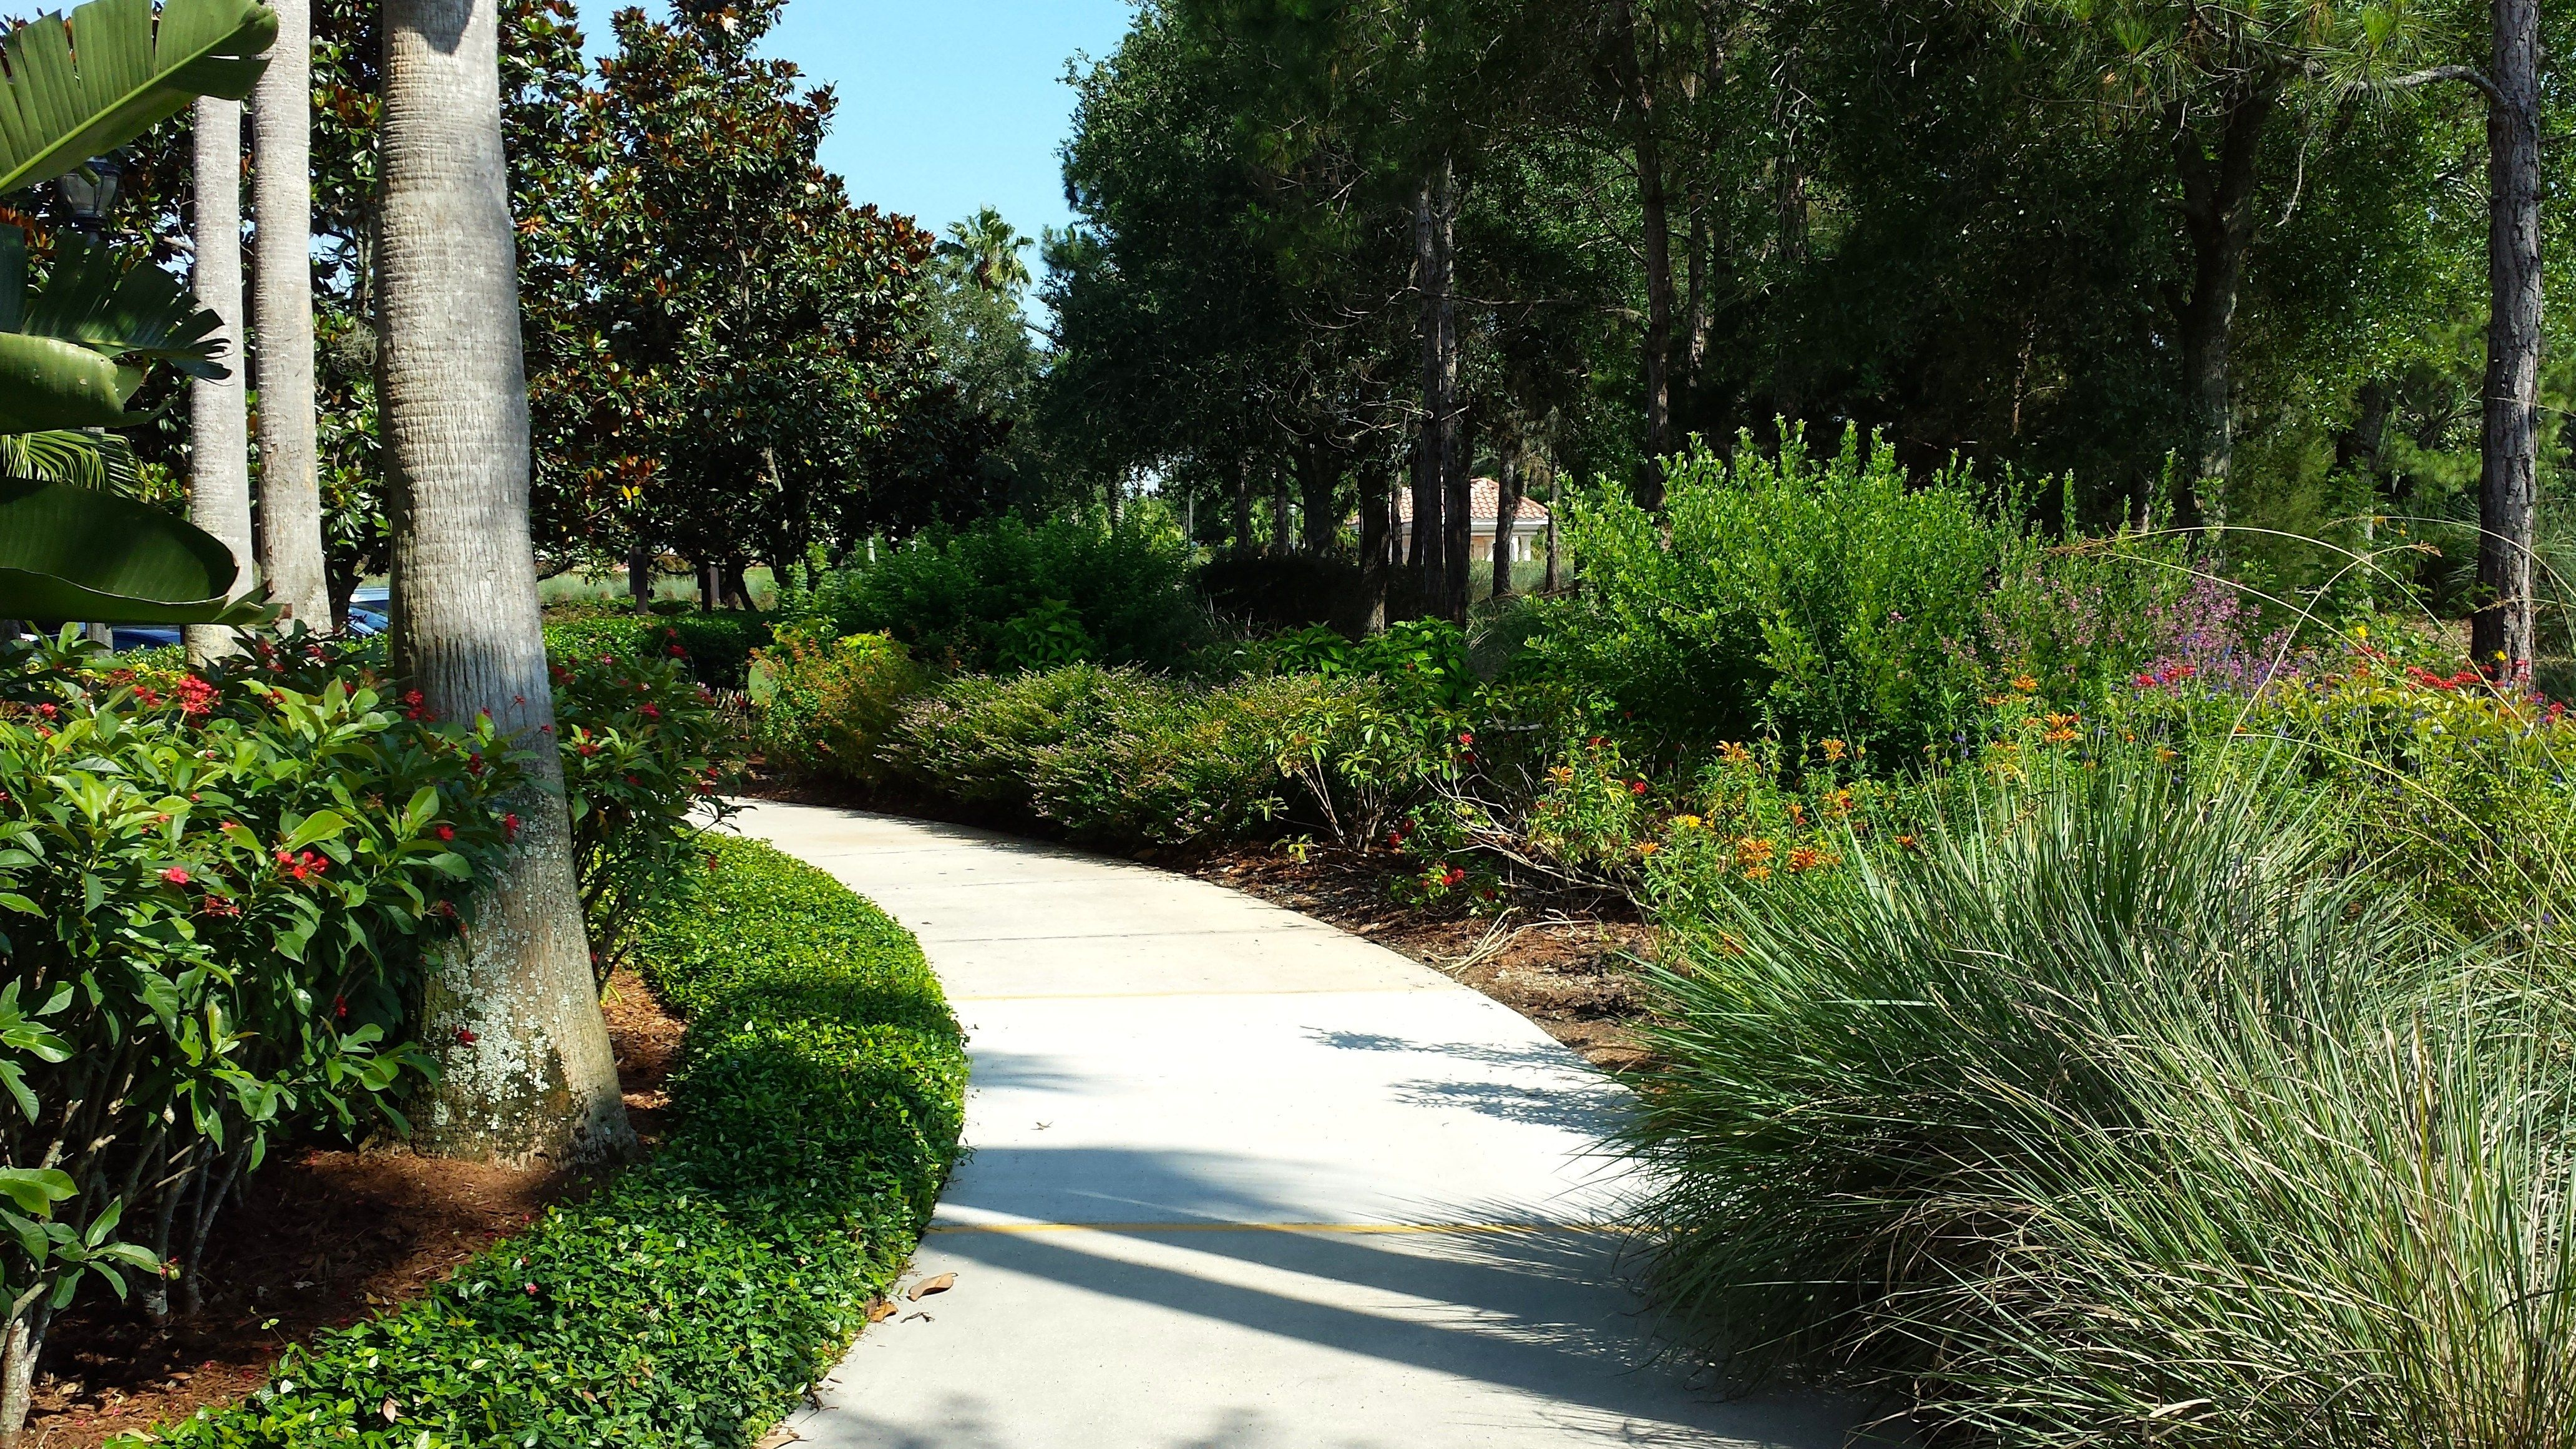 Butterfly Garden Marriott Grande Vista Resort Orlando Florida   Review And  Photo Tour